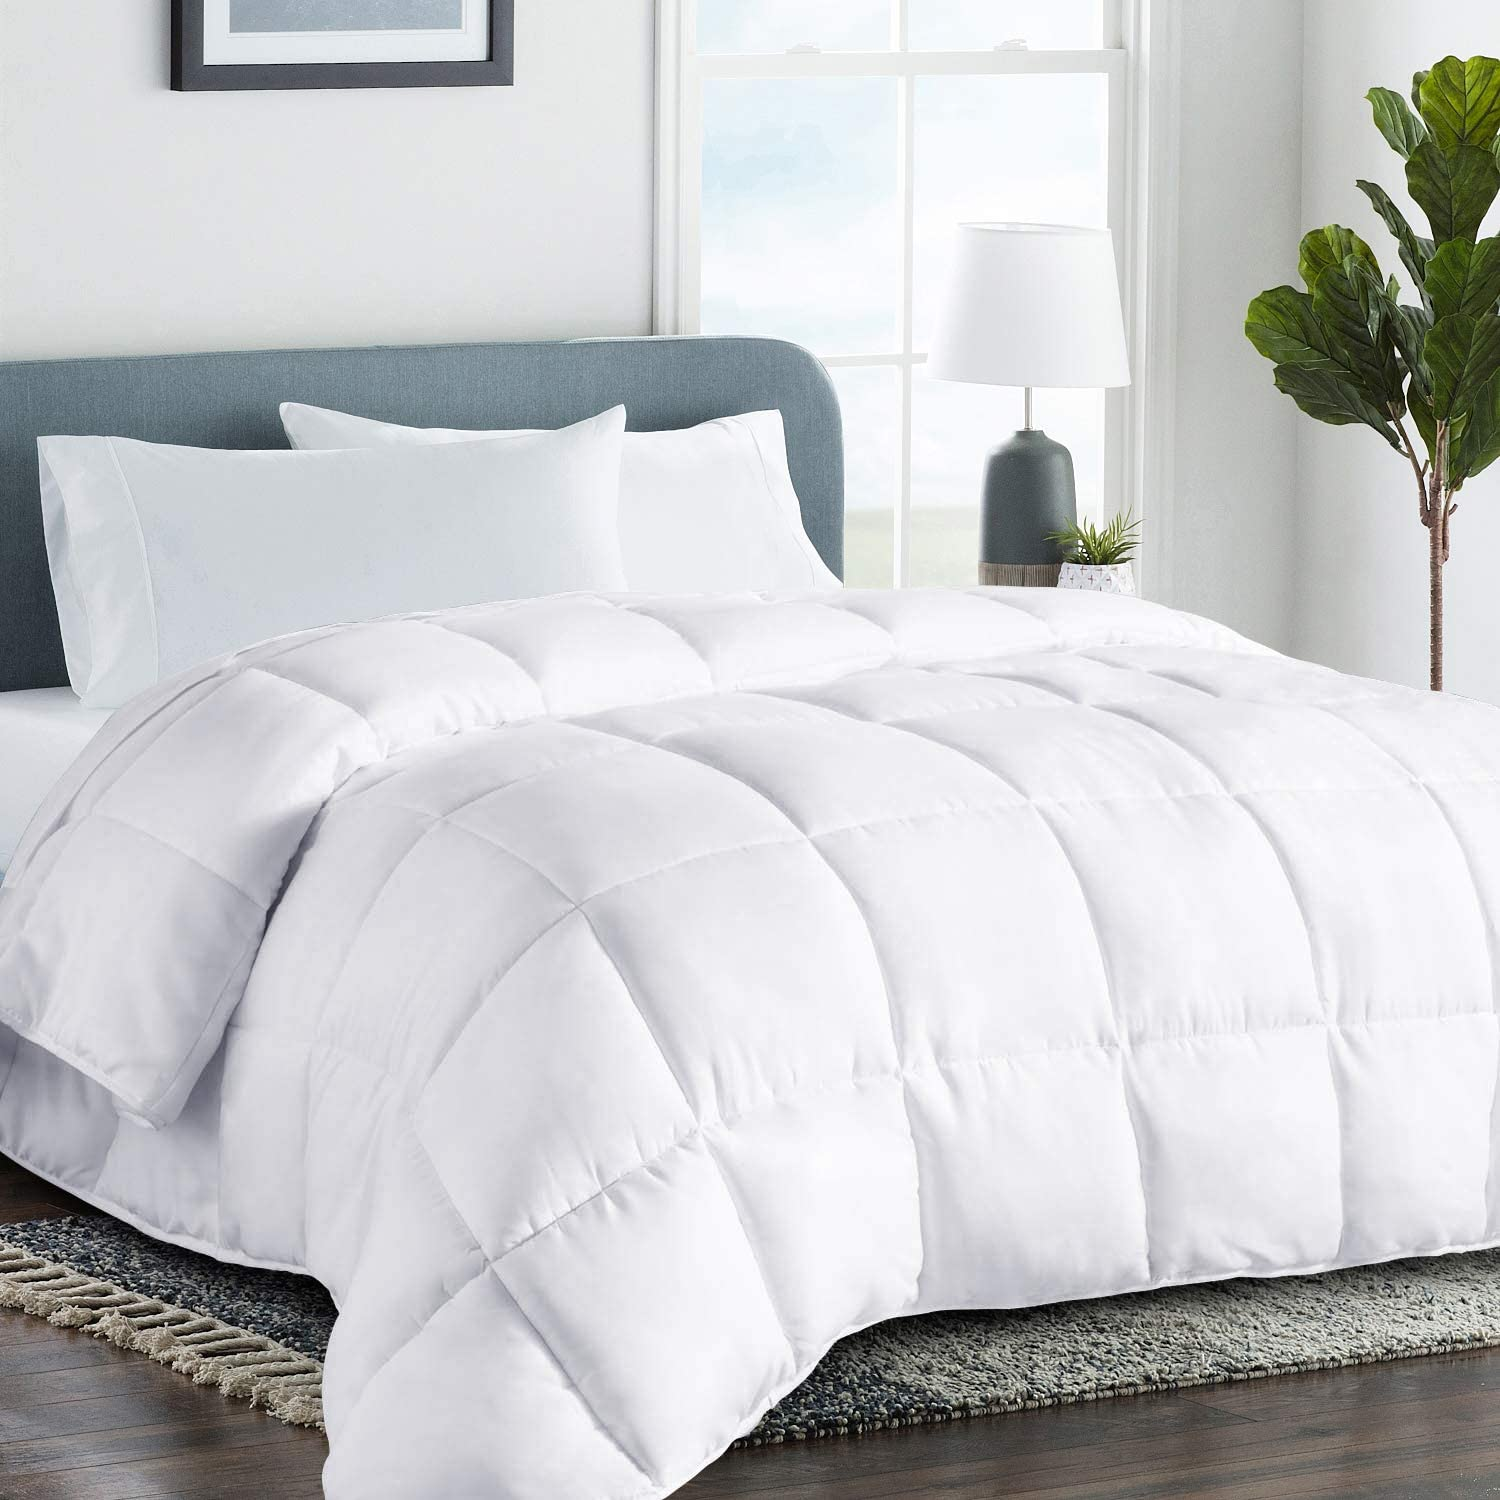 COHOME King 2100 Series Cooling Comforter Down Alternative Quilted Duvet Insert with Corner Tabs All-Season - Plush Microfiber Fill - Reversible - Machine Washable - White